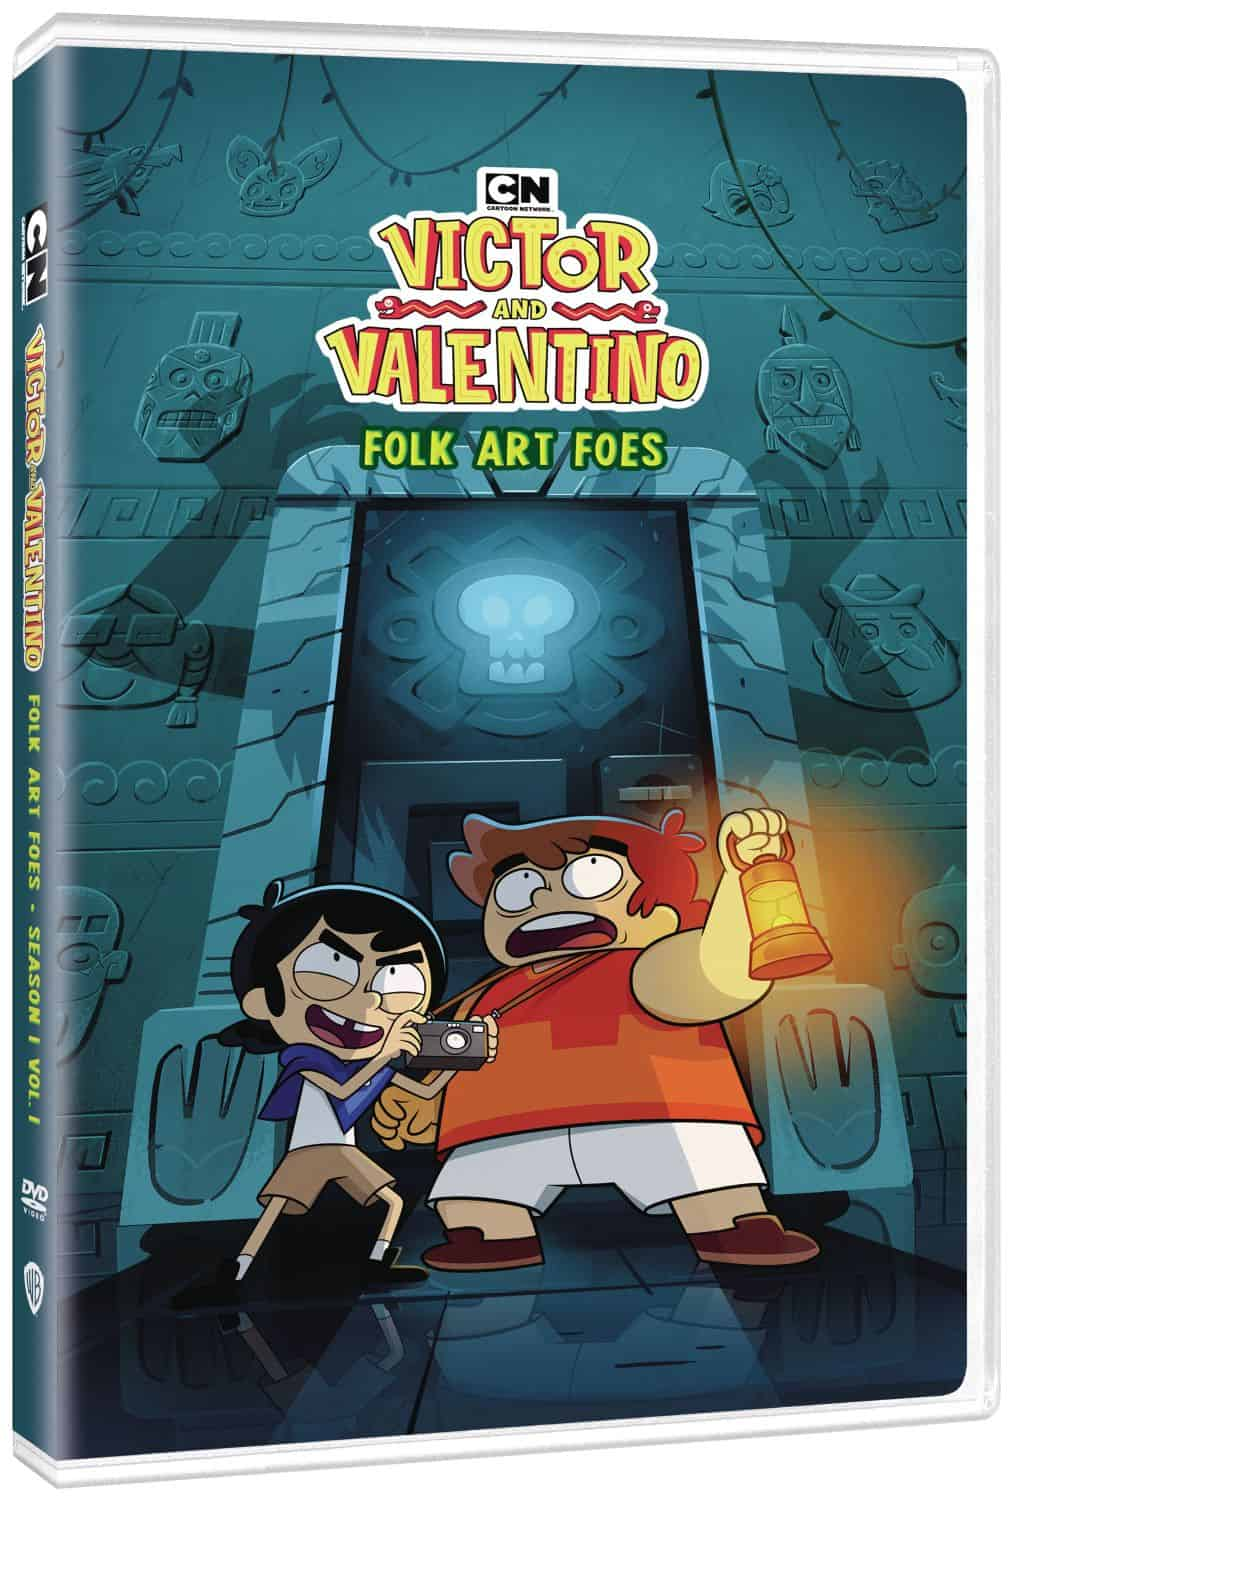 Victor and Valentino: Folk Art Foes - The Supernatural Series is Available on DVD March 2 2